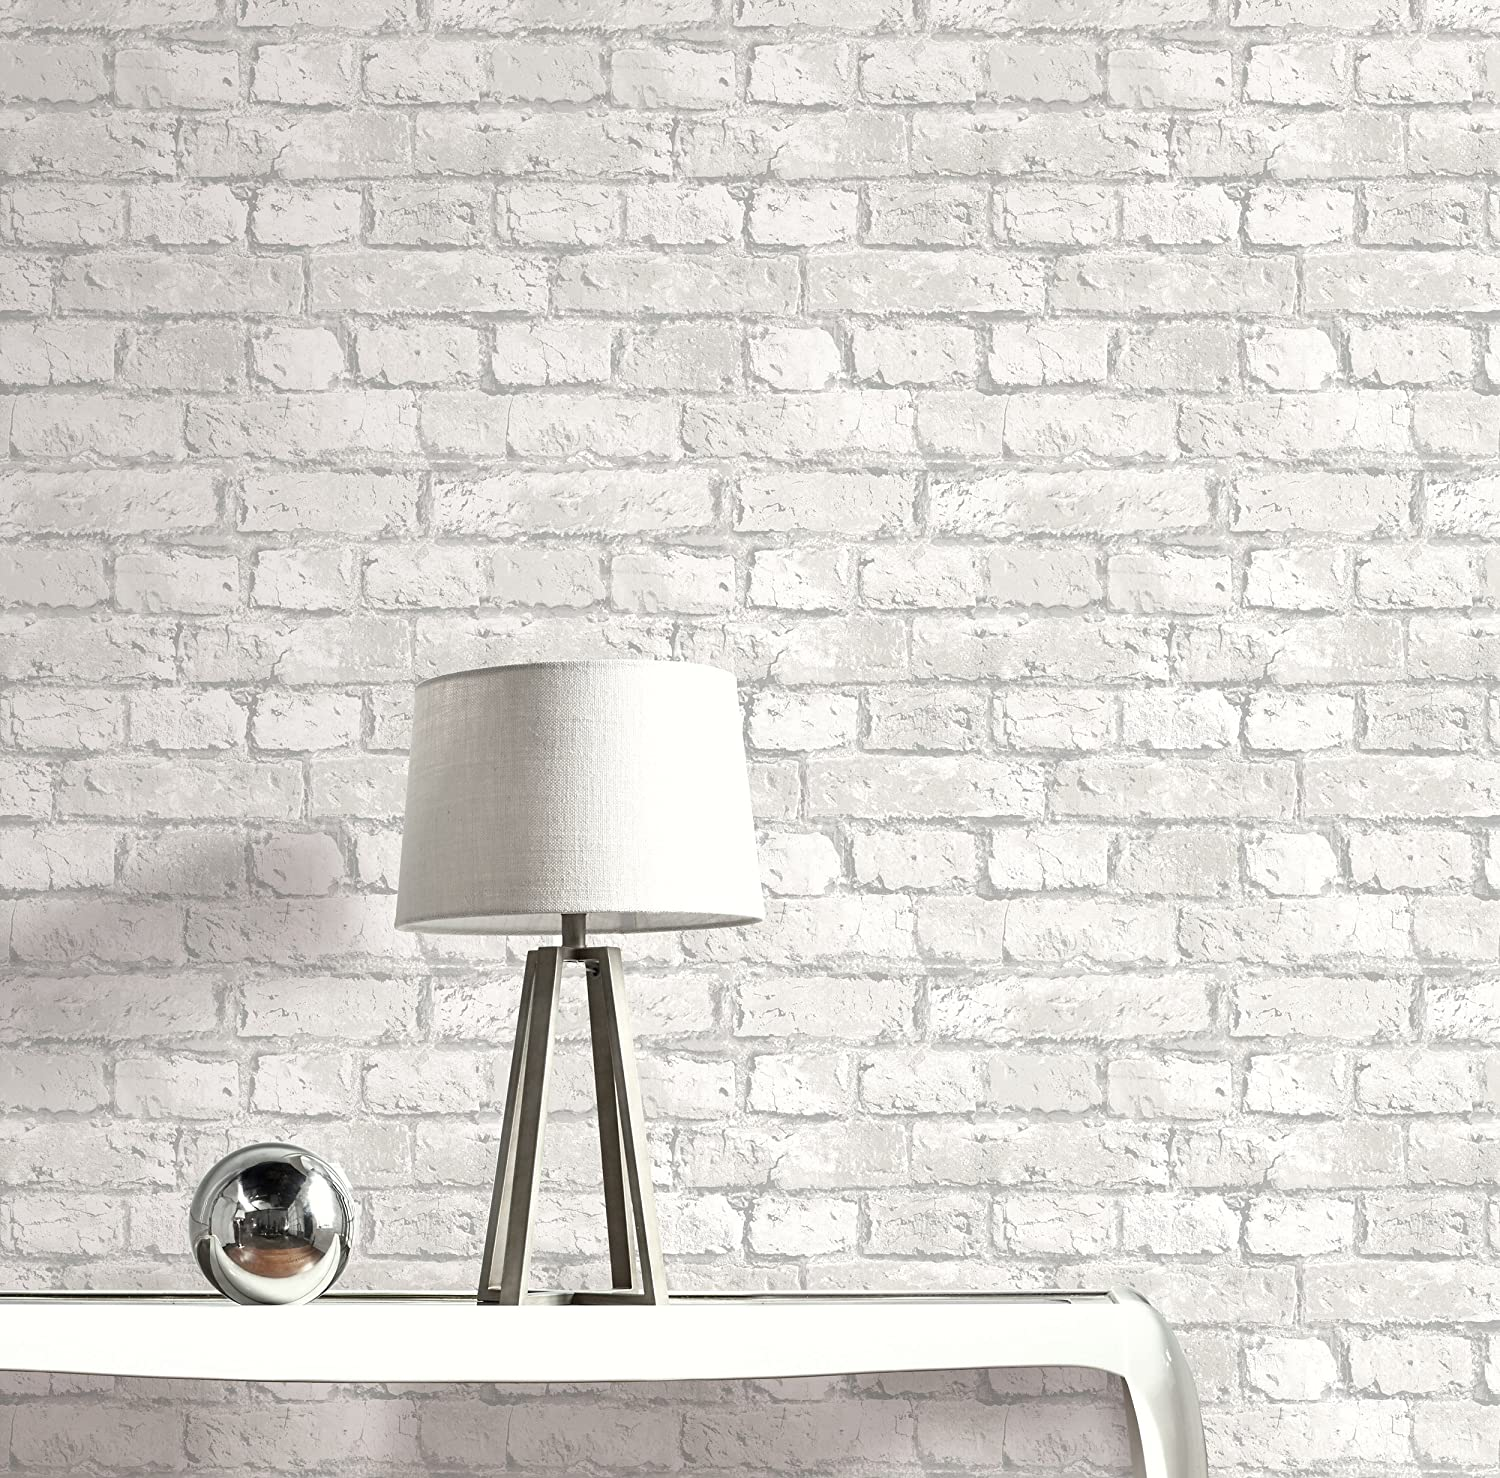 Realistic Brick Wallpaper (Grey and White)